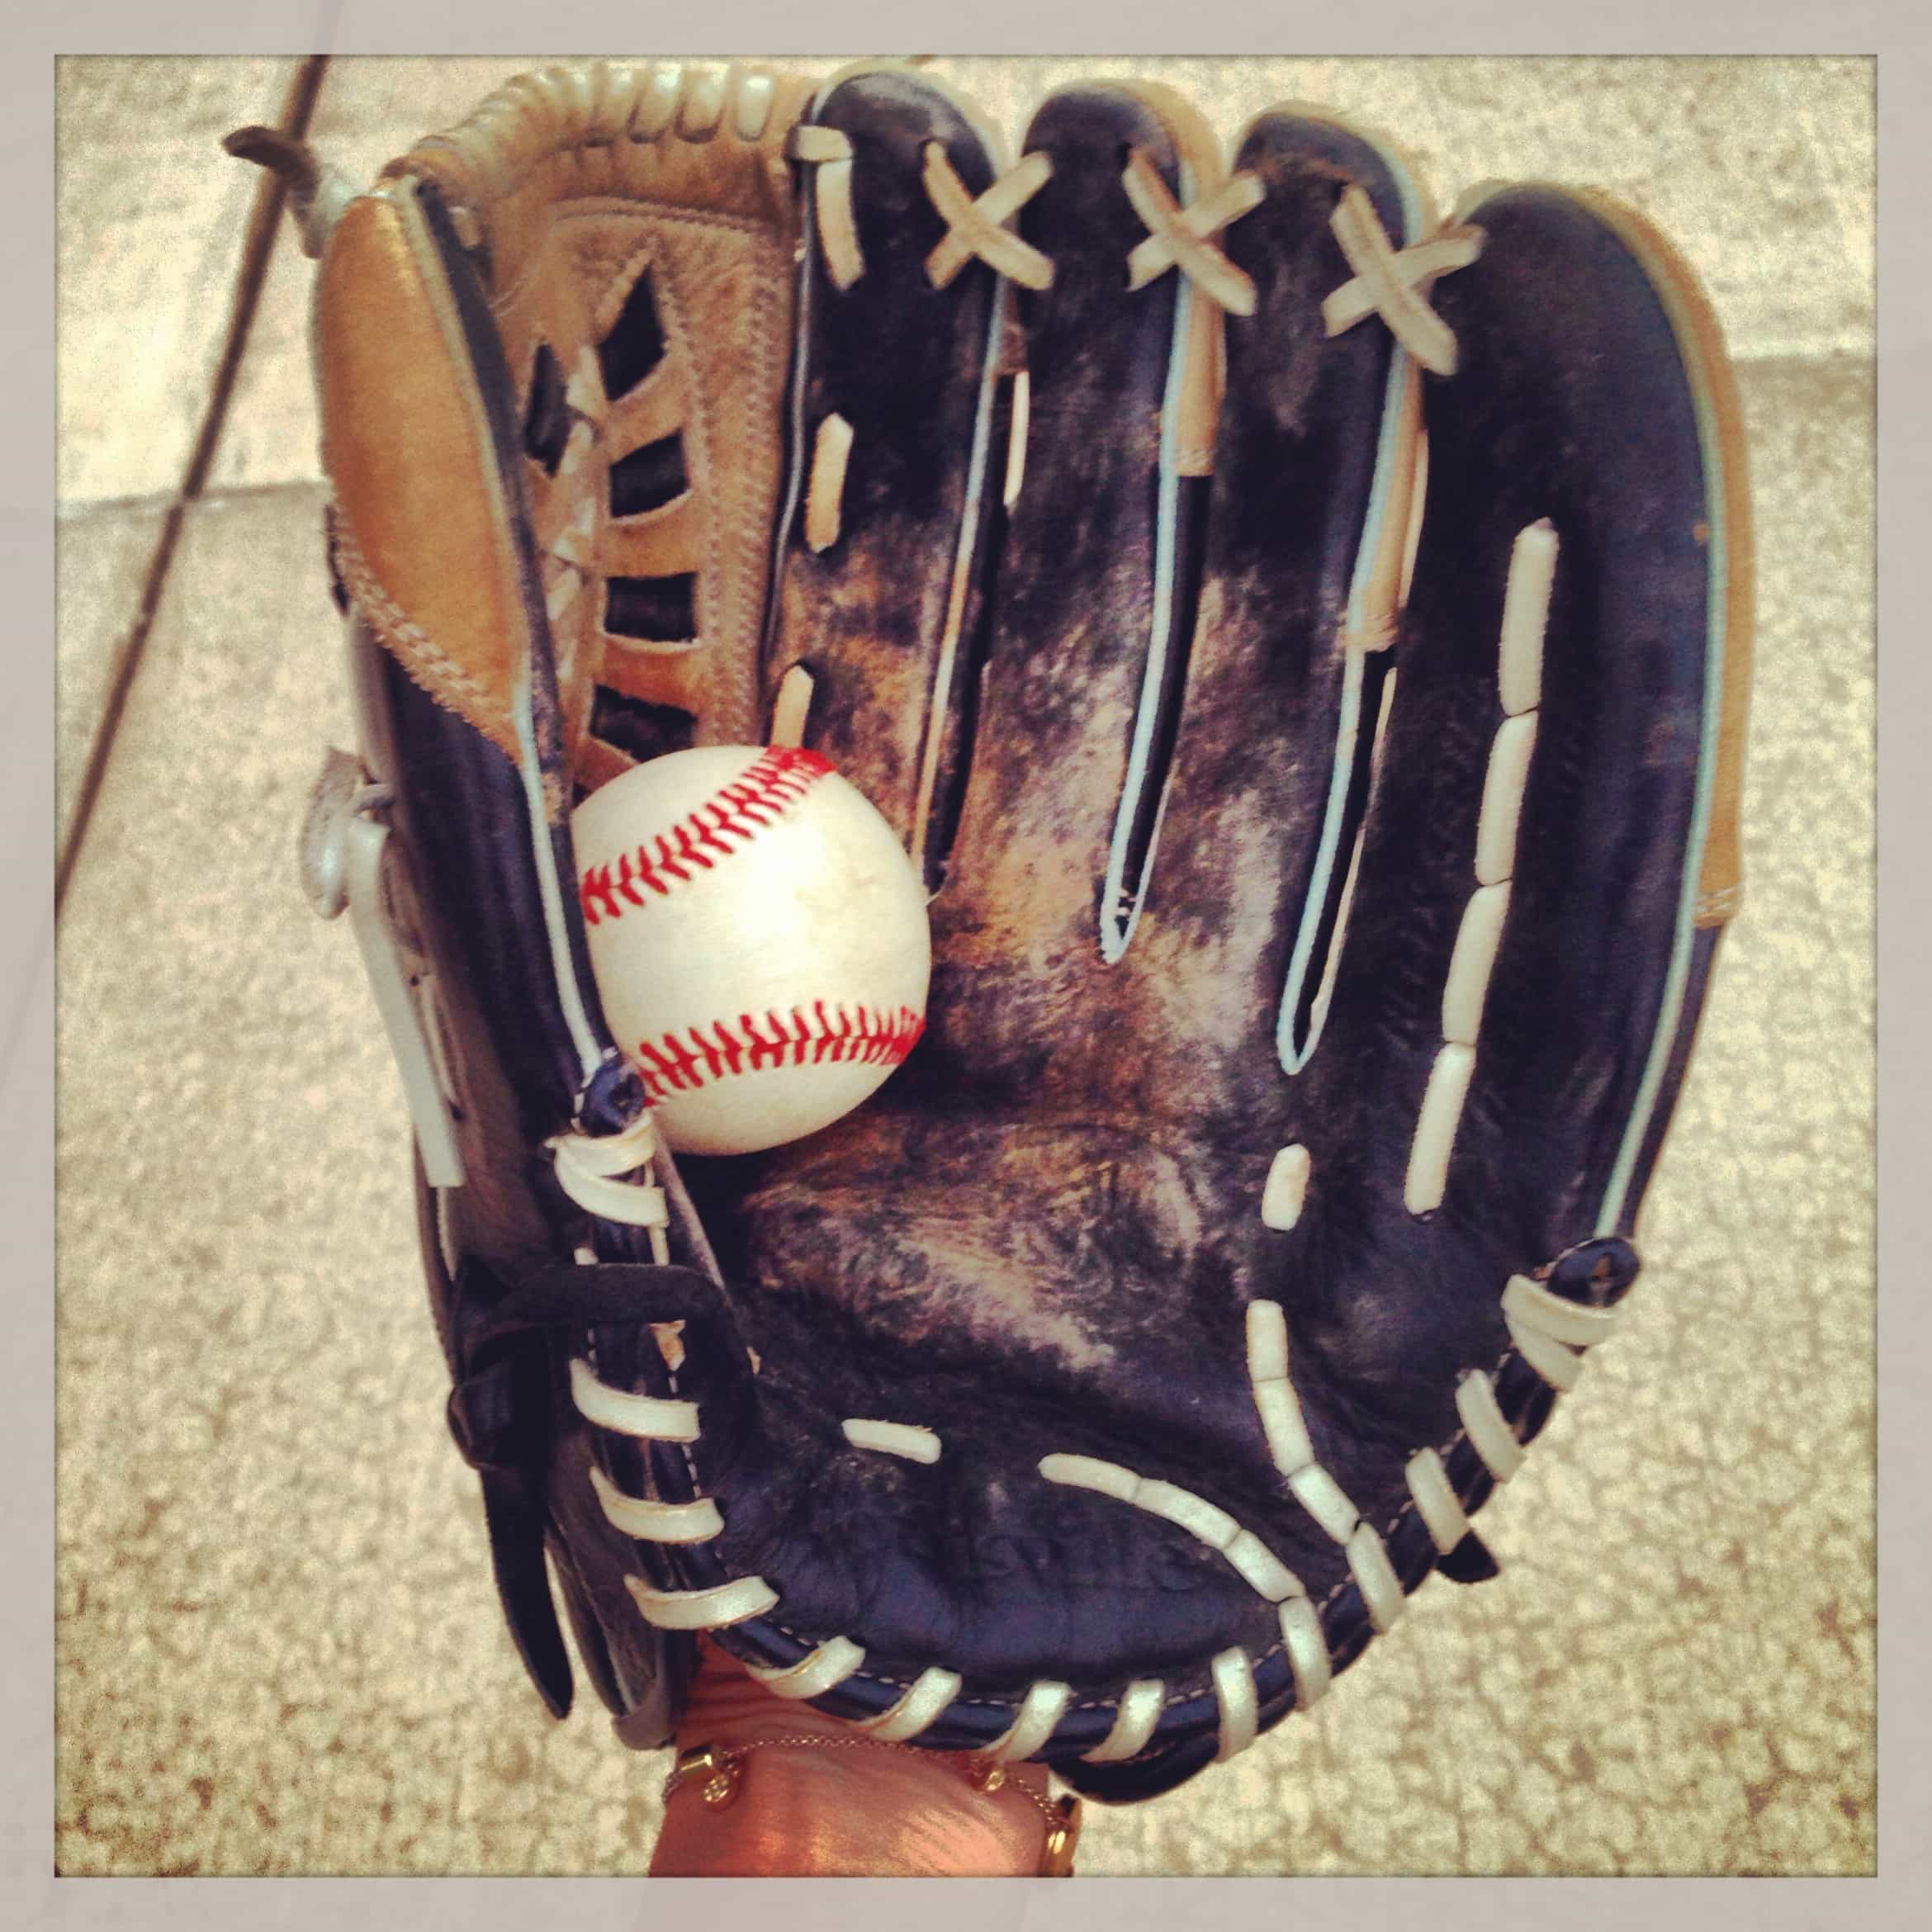 Glove with Baseball - Learning to Catch